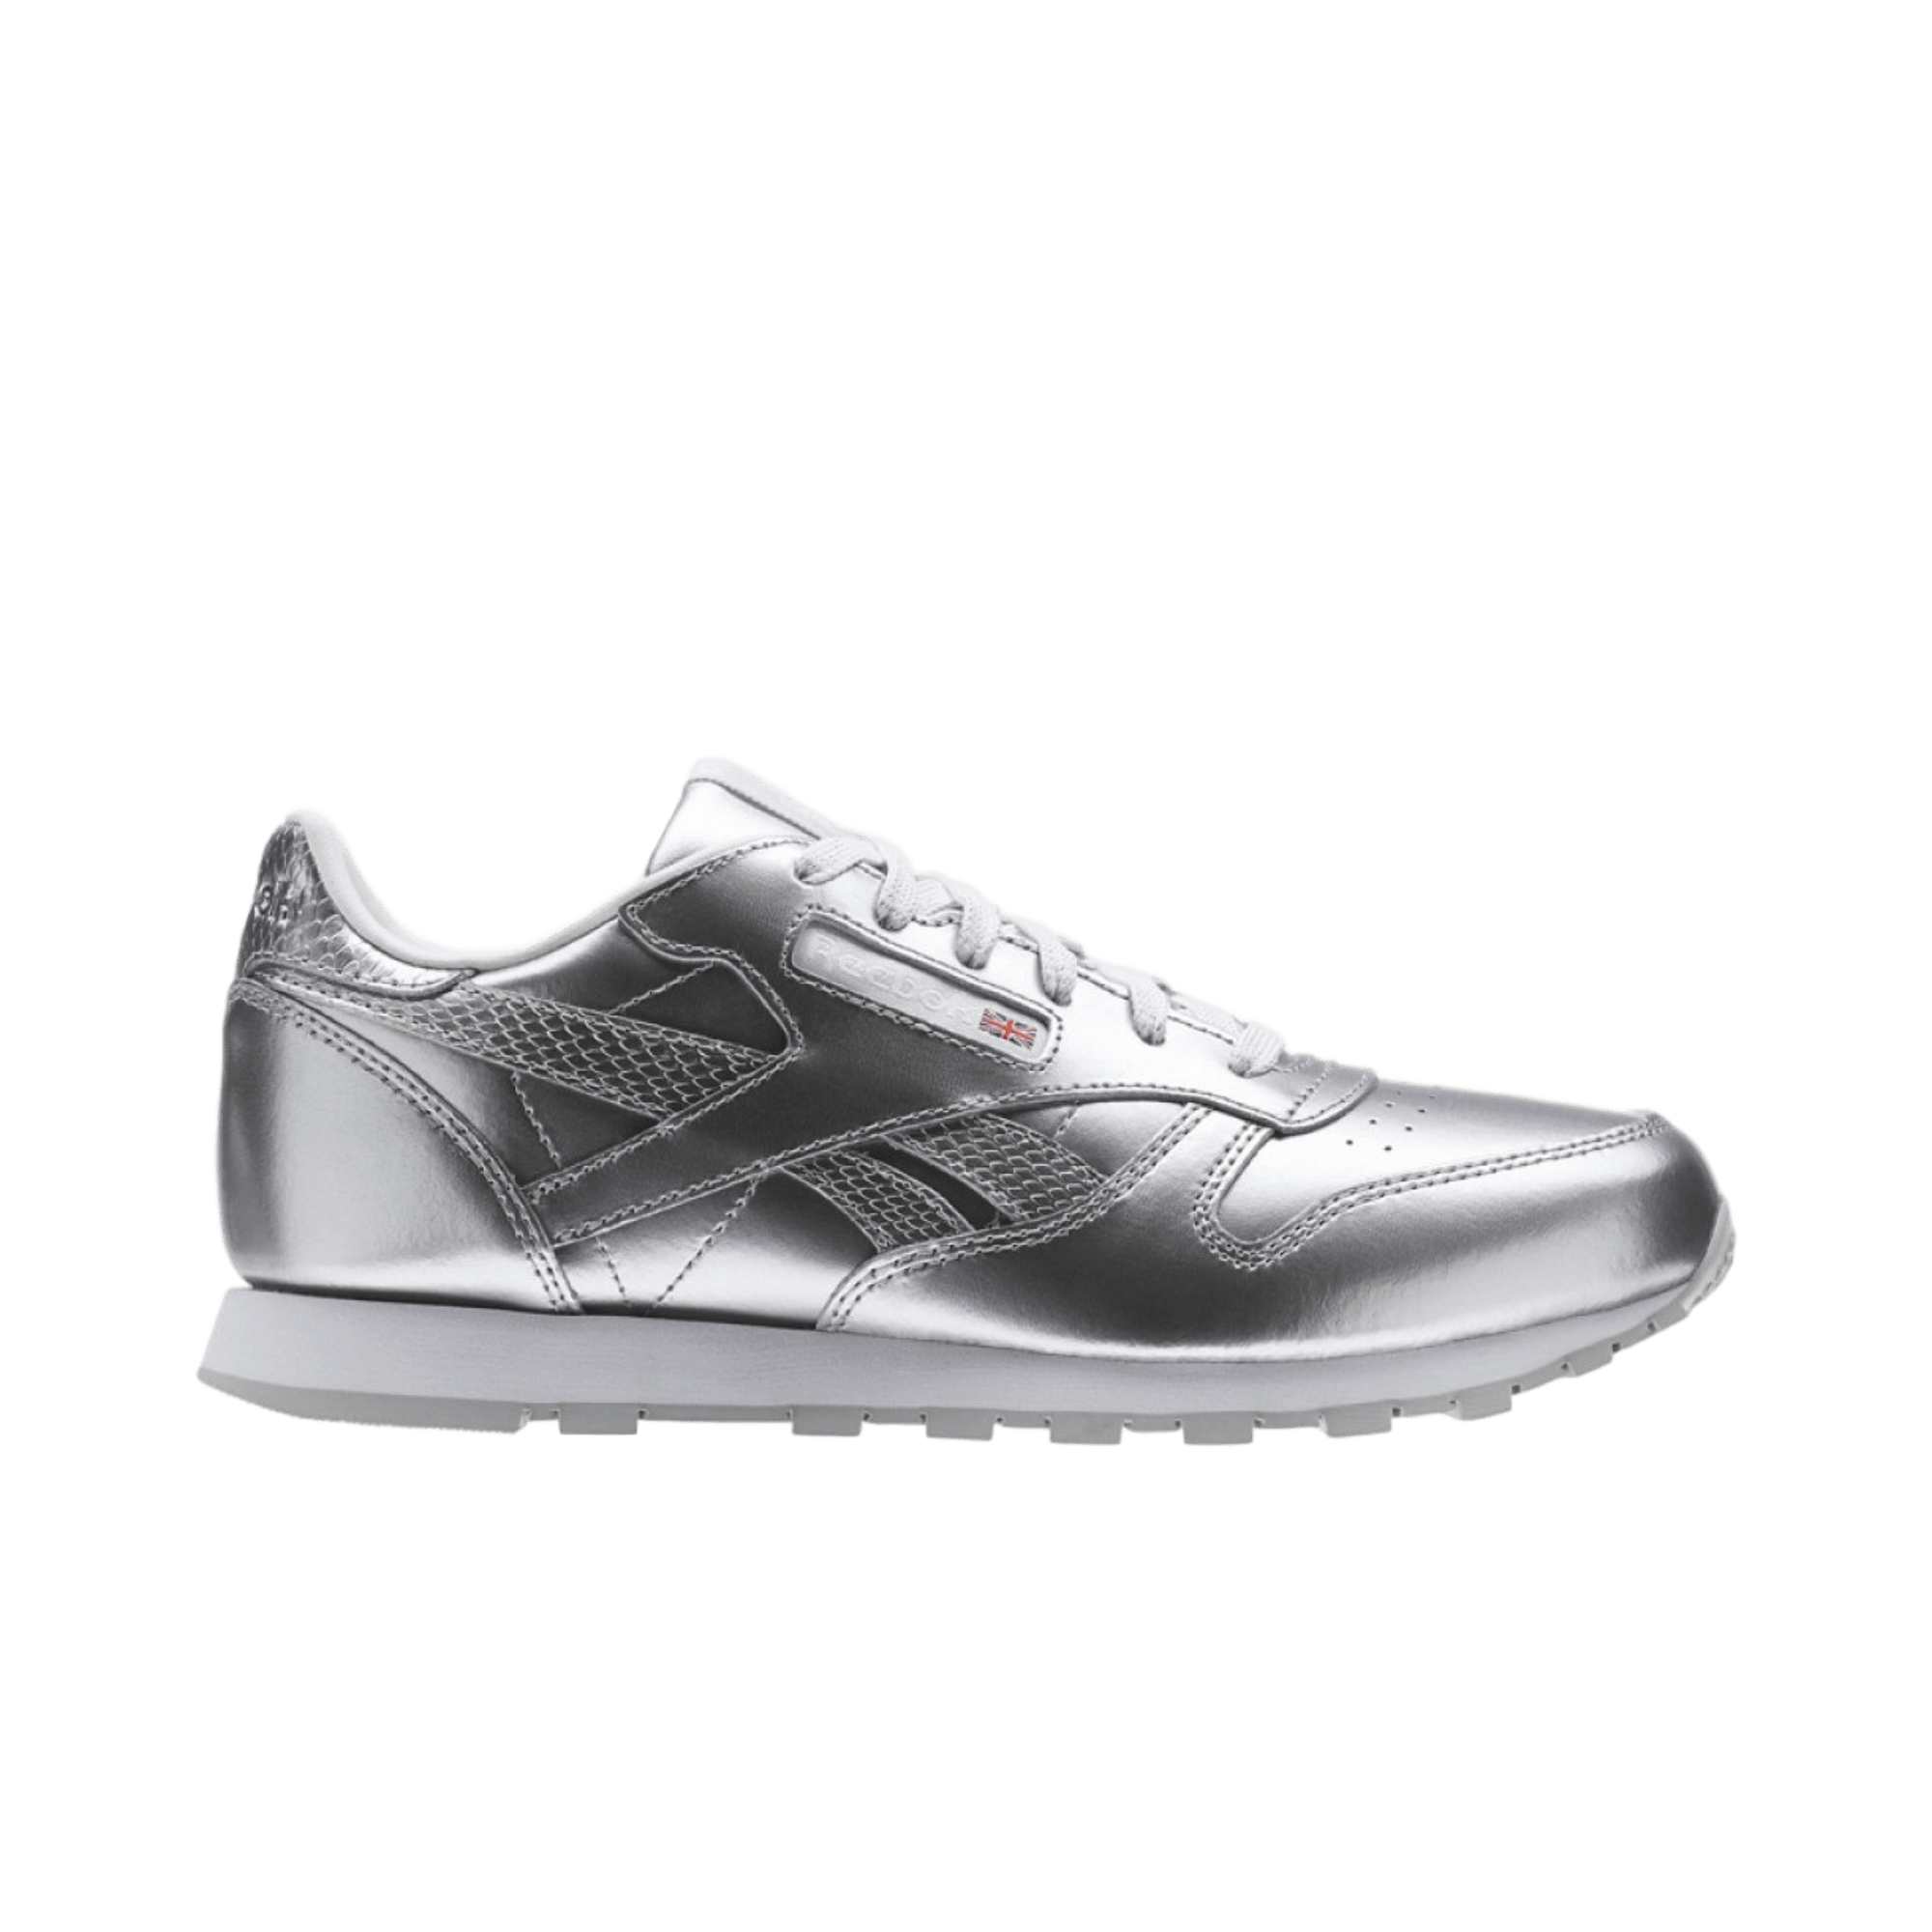 CLASSIC LEATHER METALLIC BS8945 - OUTLETWORLD